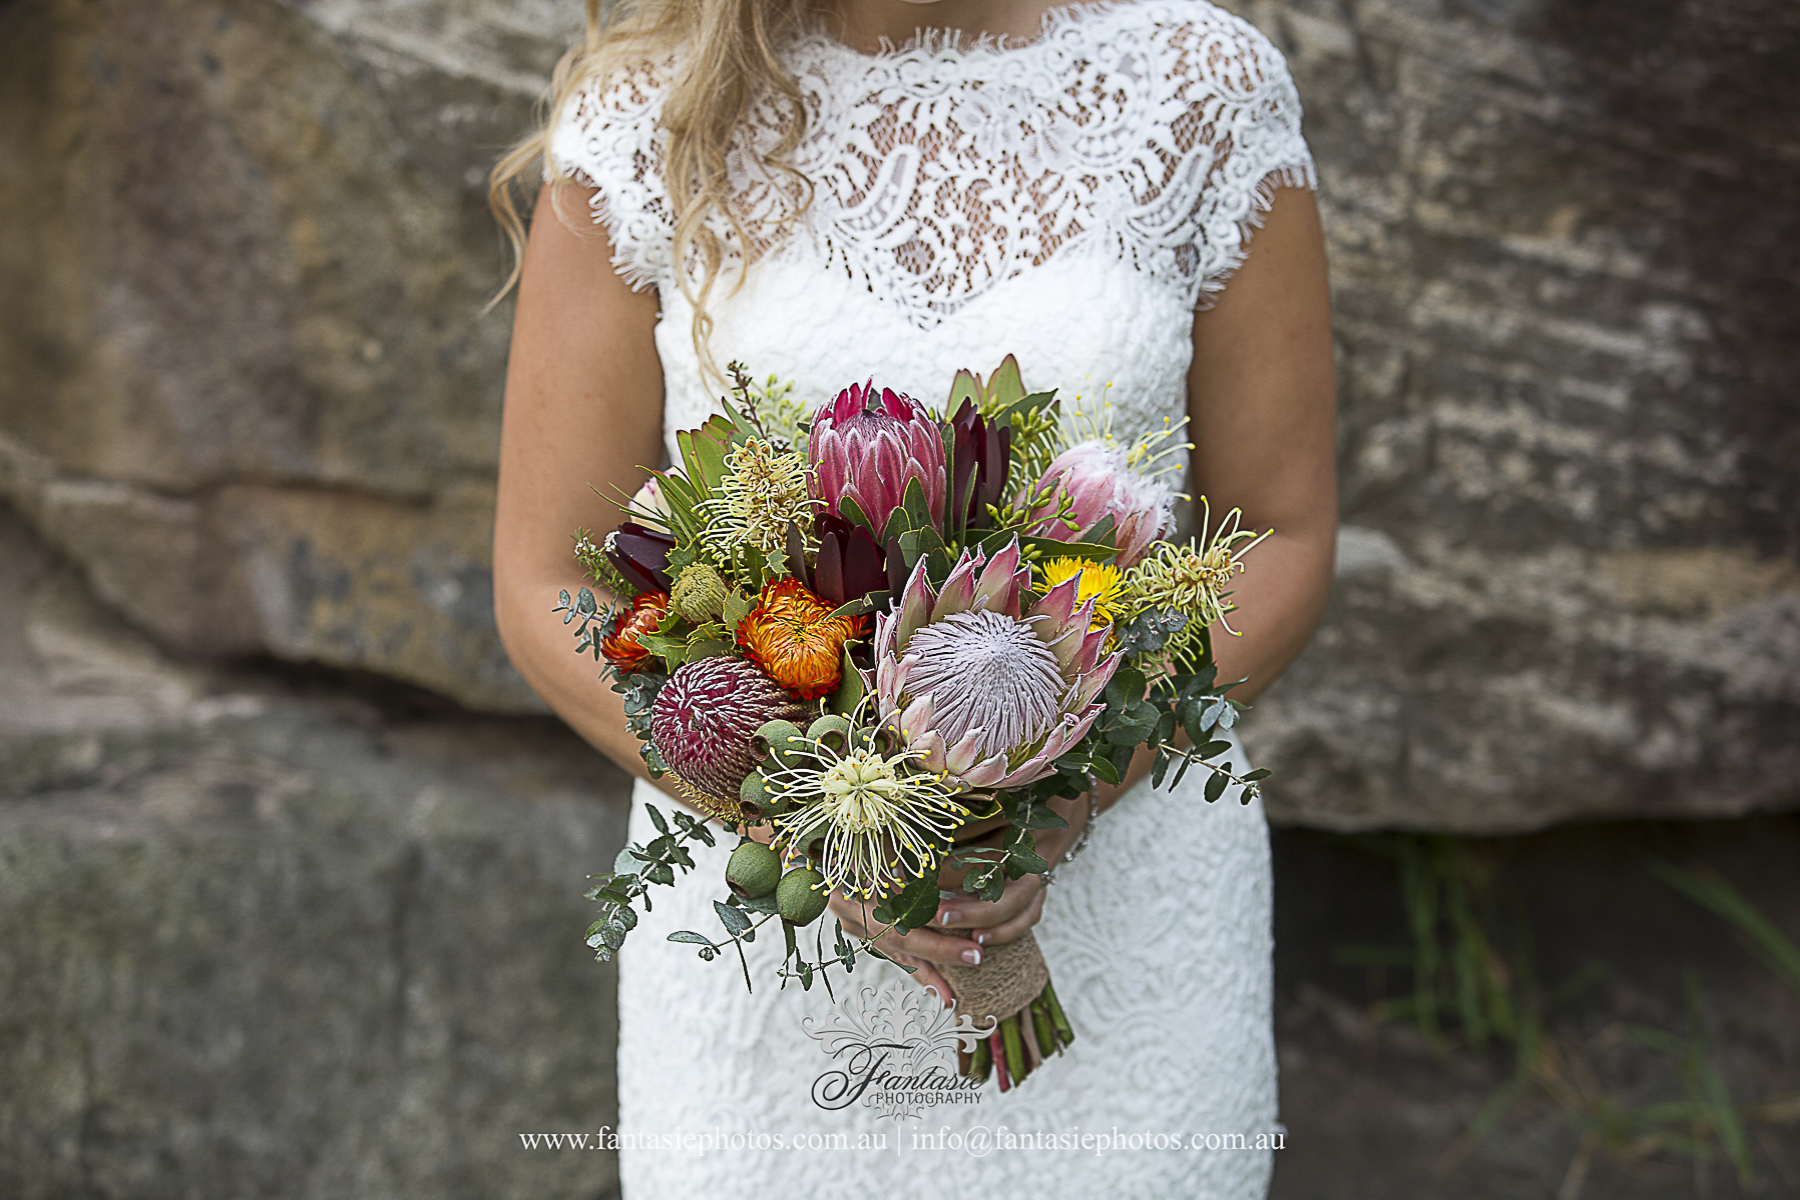 Stunning April Wedding Bridal Bouquet Photo | Fantasie Photography